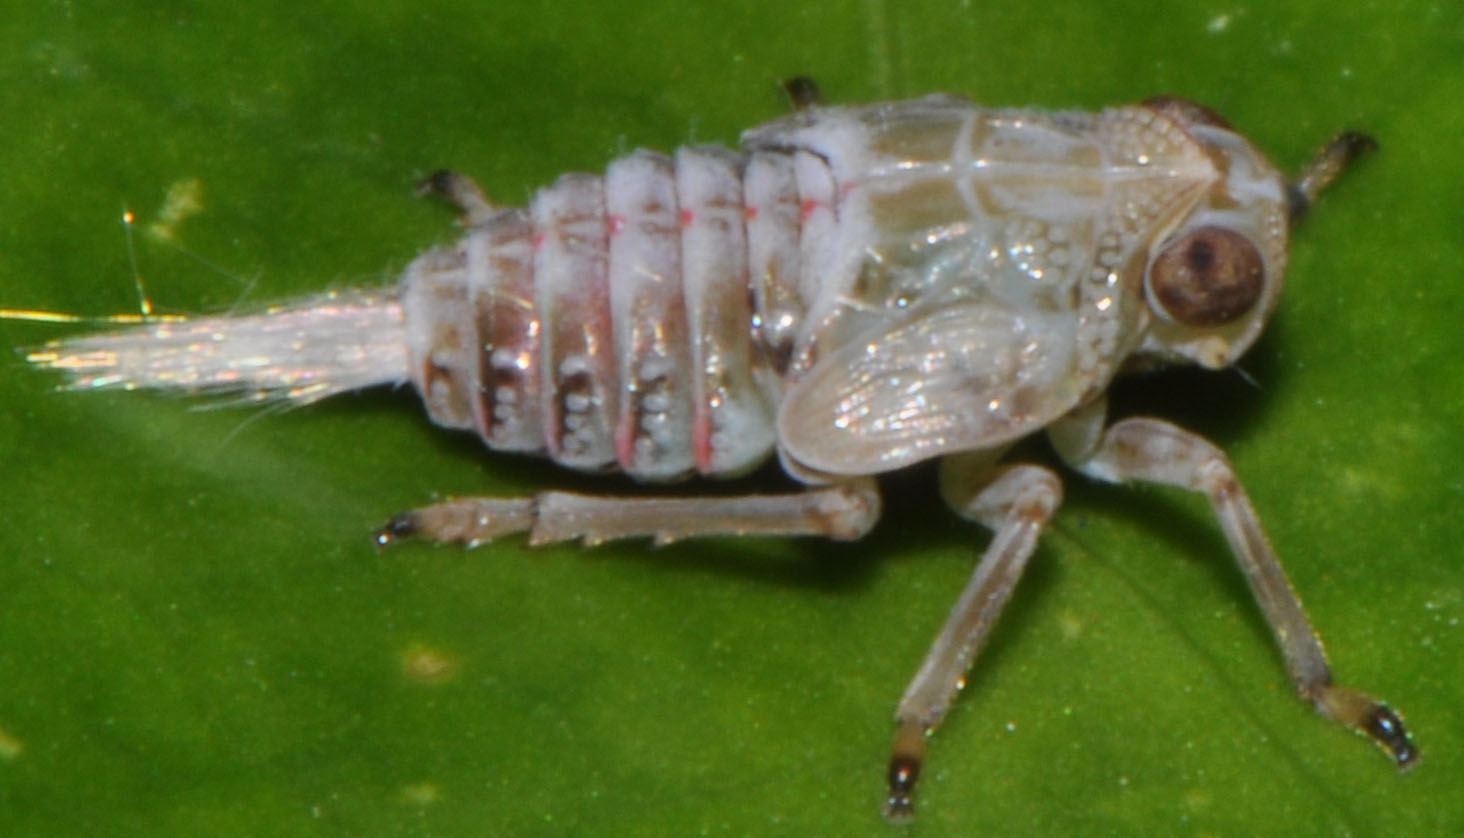 Photograph of an Issus nymph. Credit: Malcolm Burrows